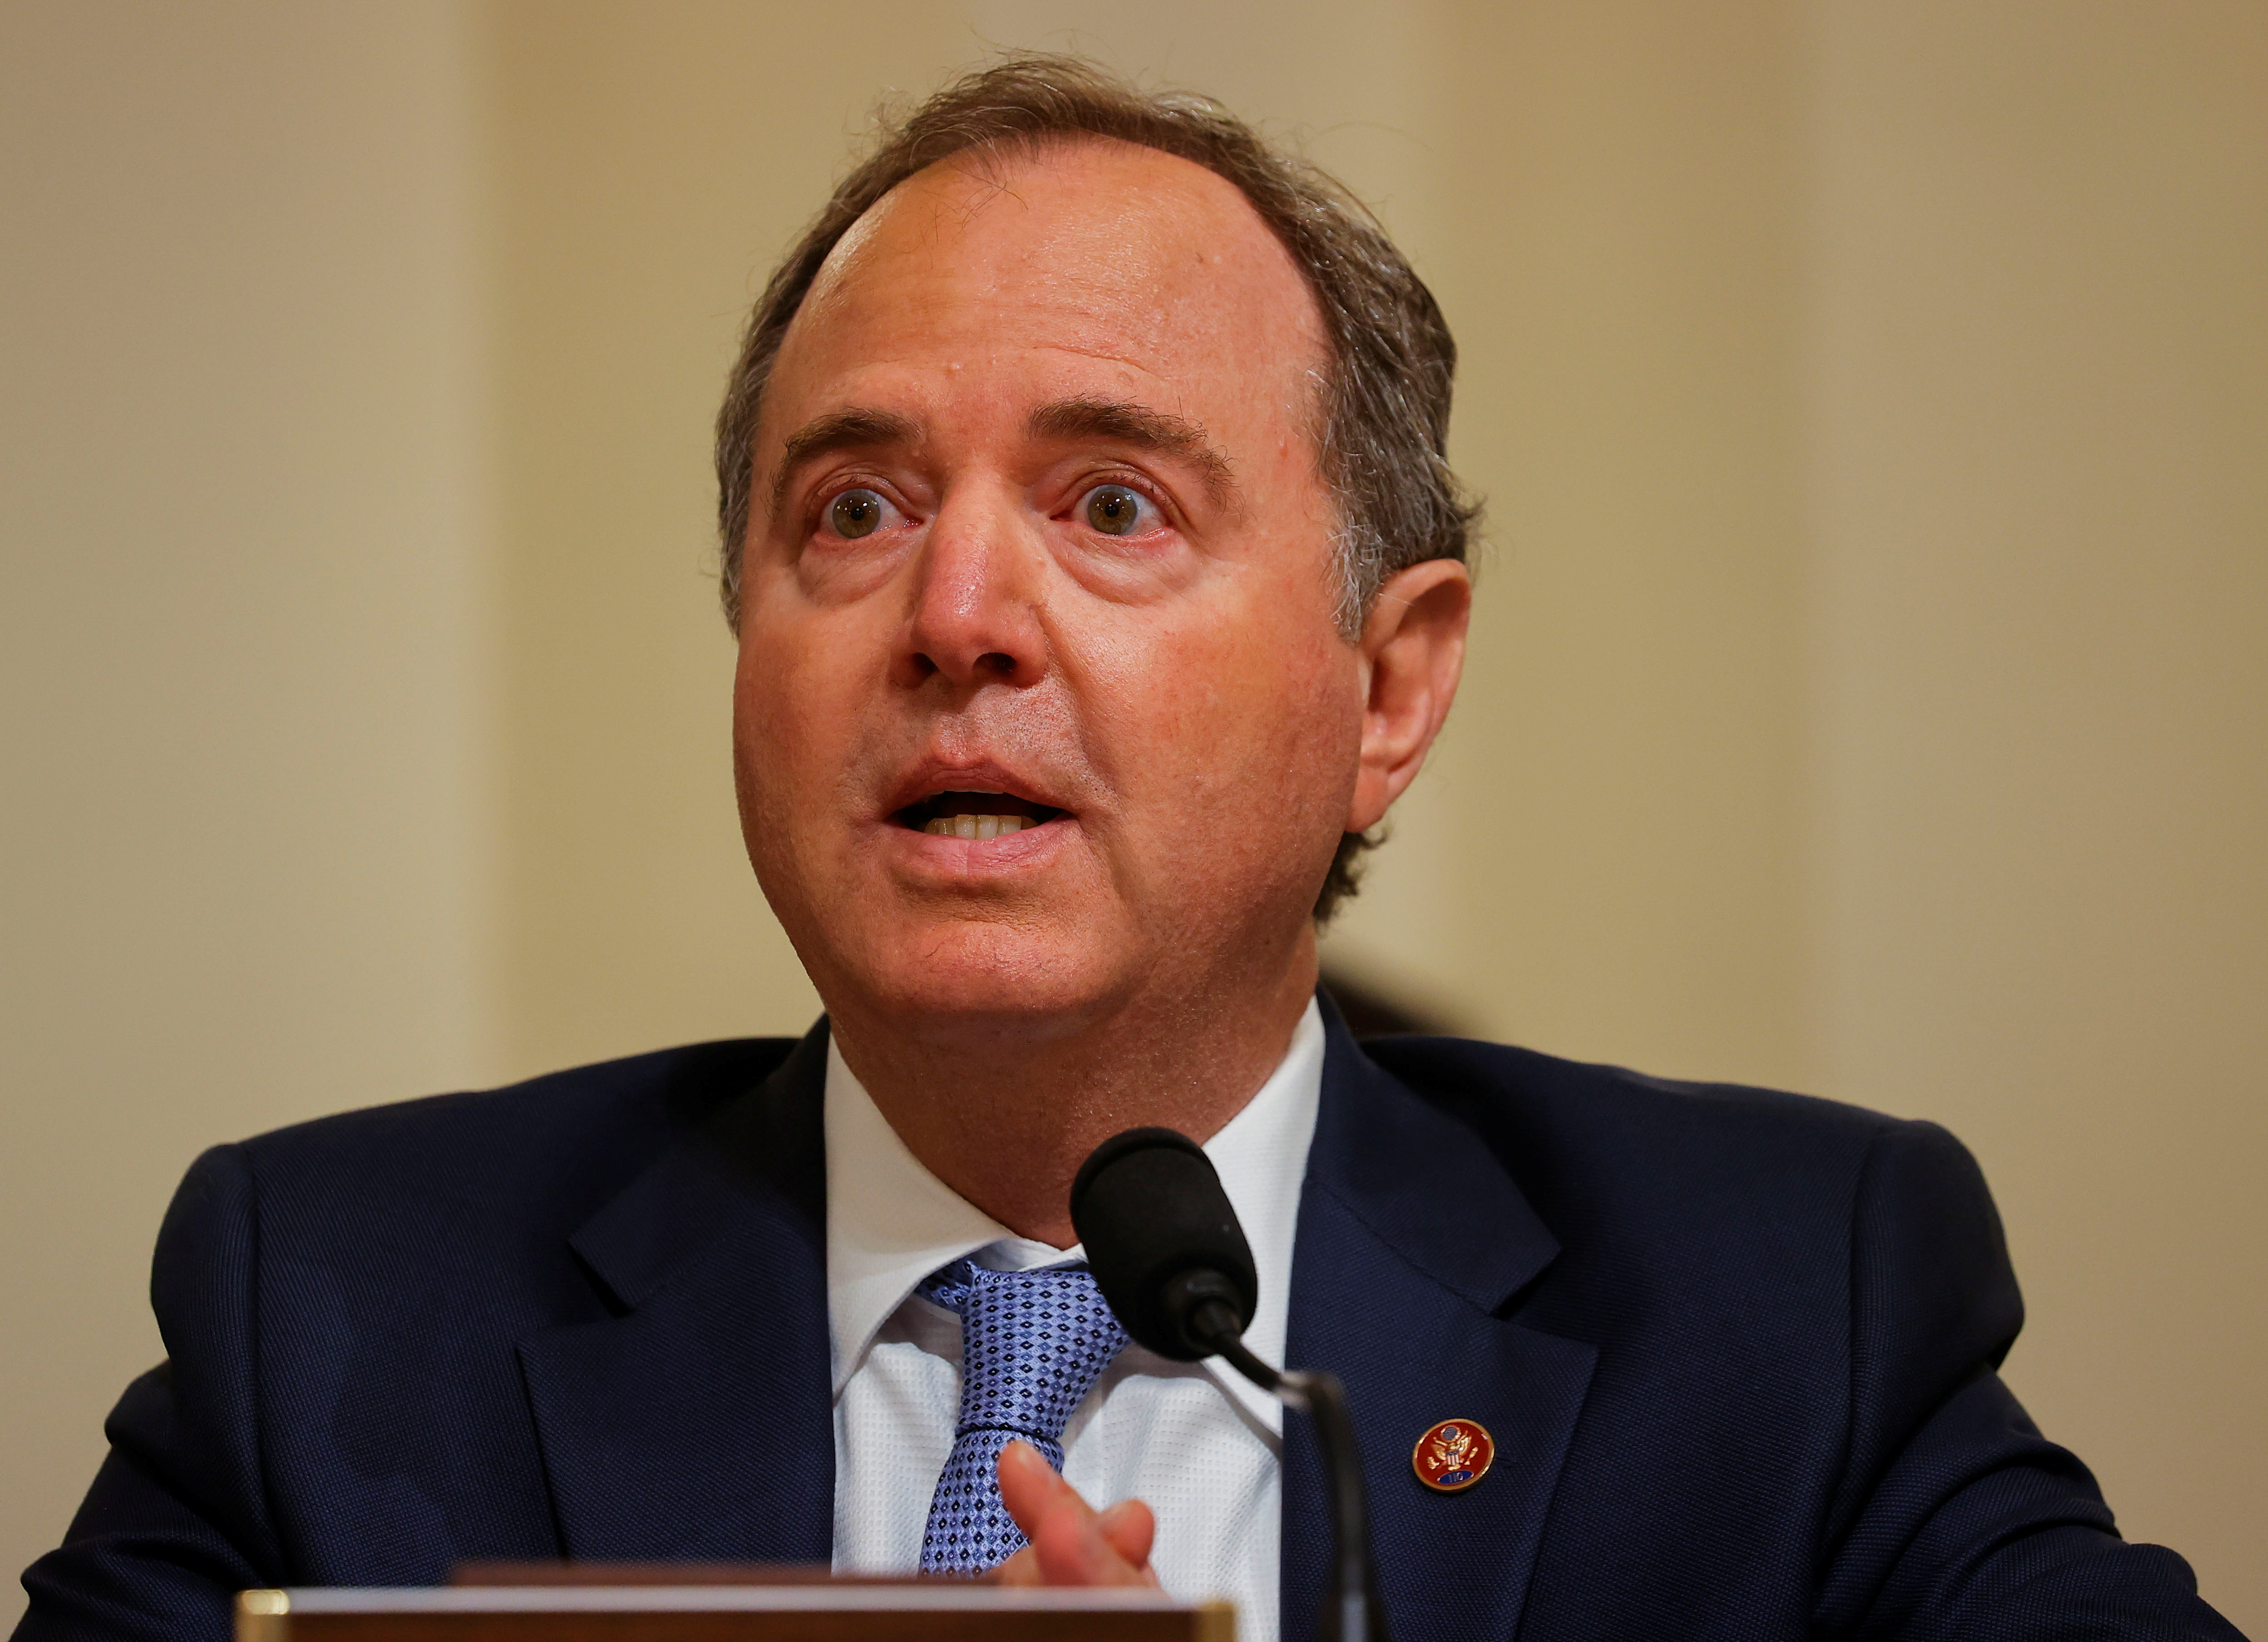 U.S. Representative Adam Schiff (D-CA) speaks during the opening hearing of the U.S. House (Select) Committee investigating the January 6 attack on the U.S. Capitol, on Capitol Hill in Washington, U.S., July 27, 2021. REUTERS/Jim Bourg/Pool